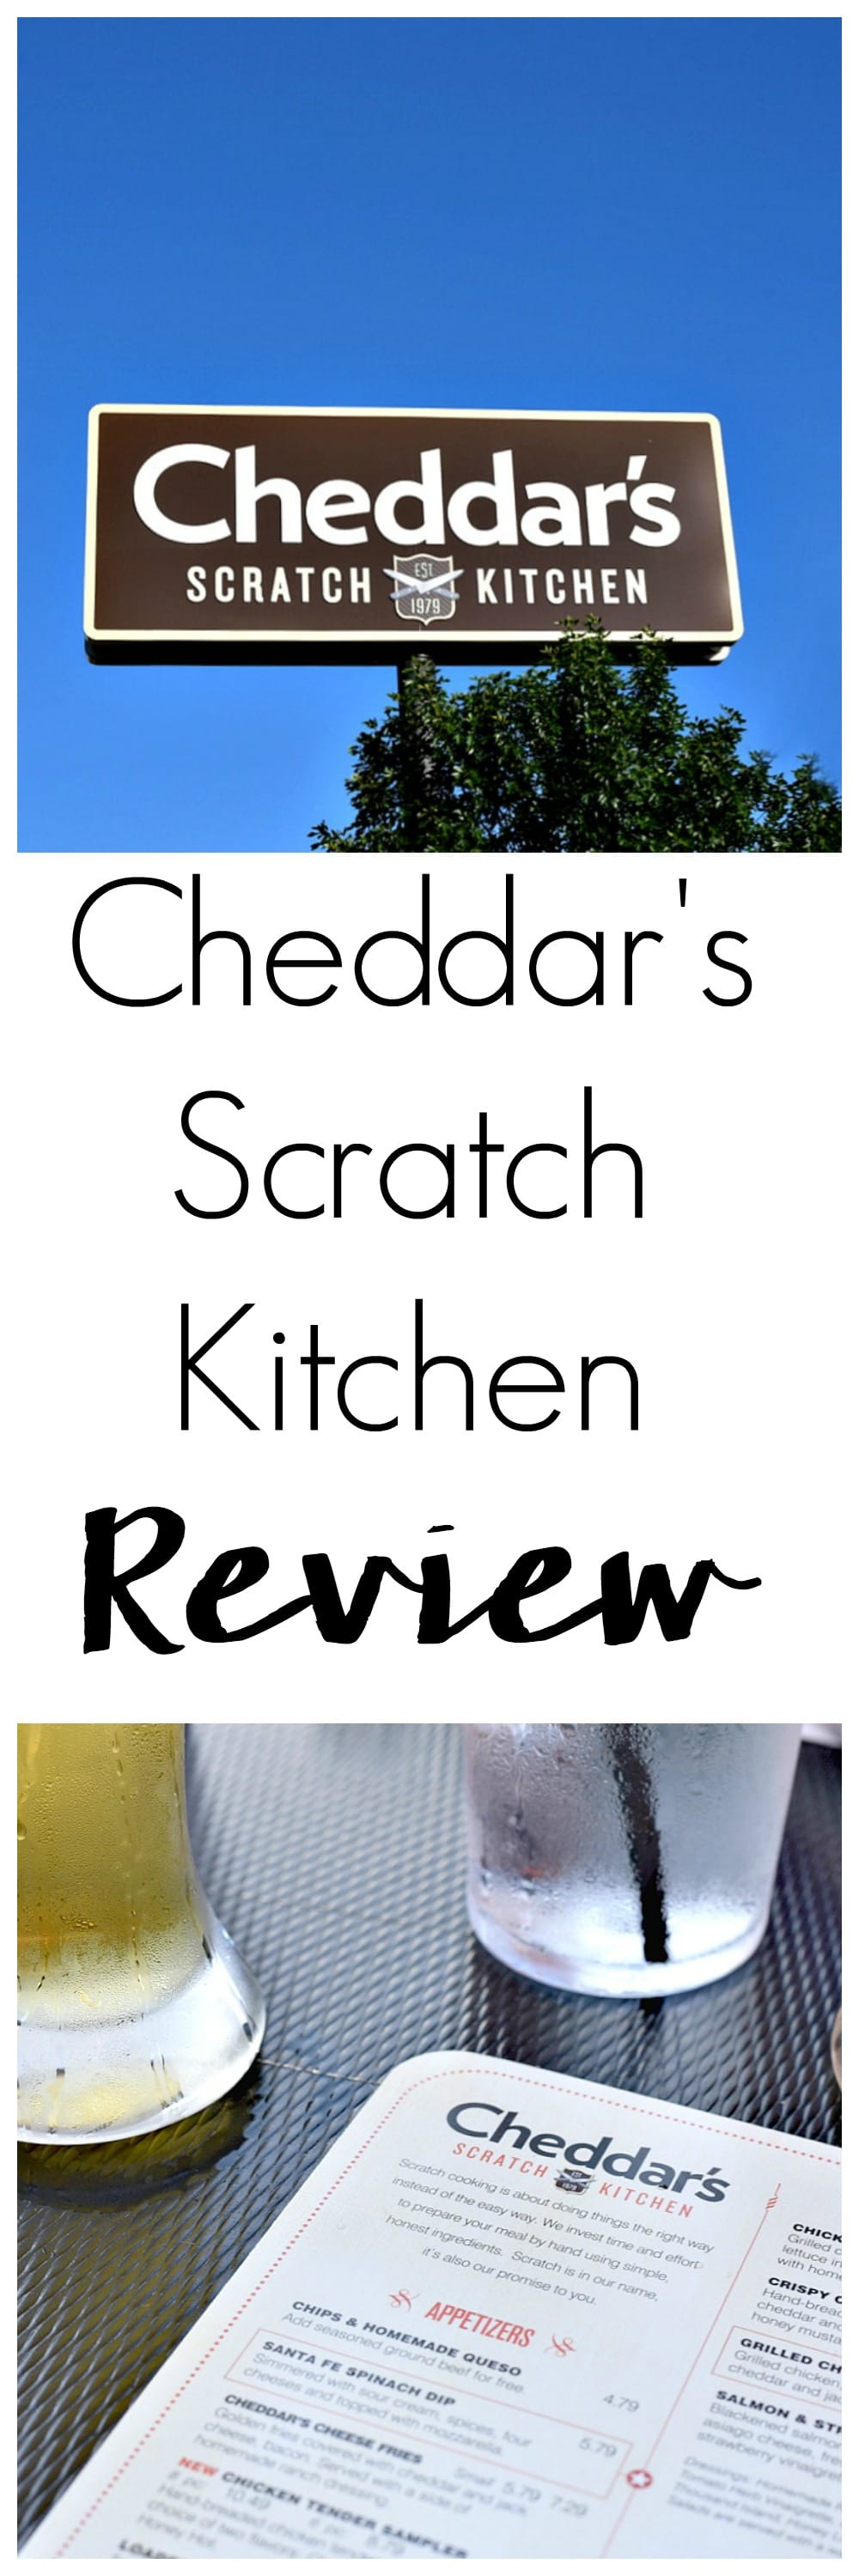 Cheddar s Scratch Kitchen Review $50 Gift Card Giveaway